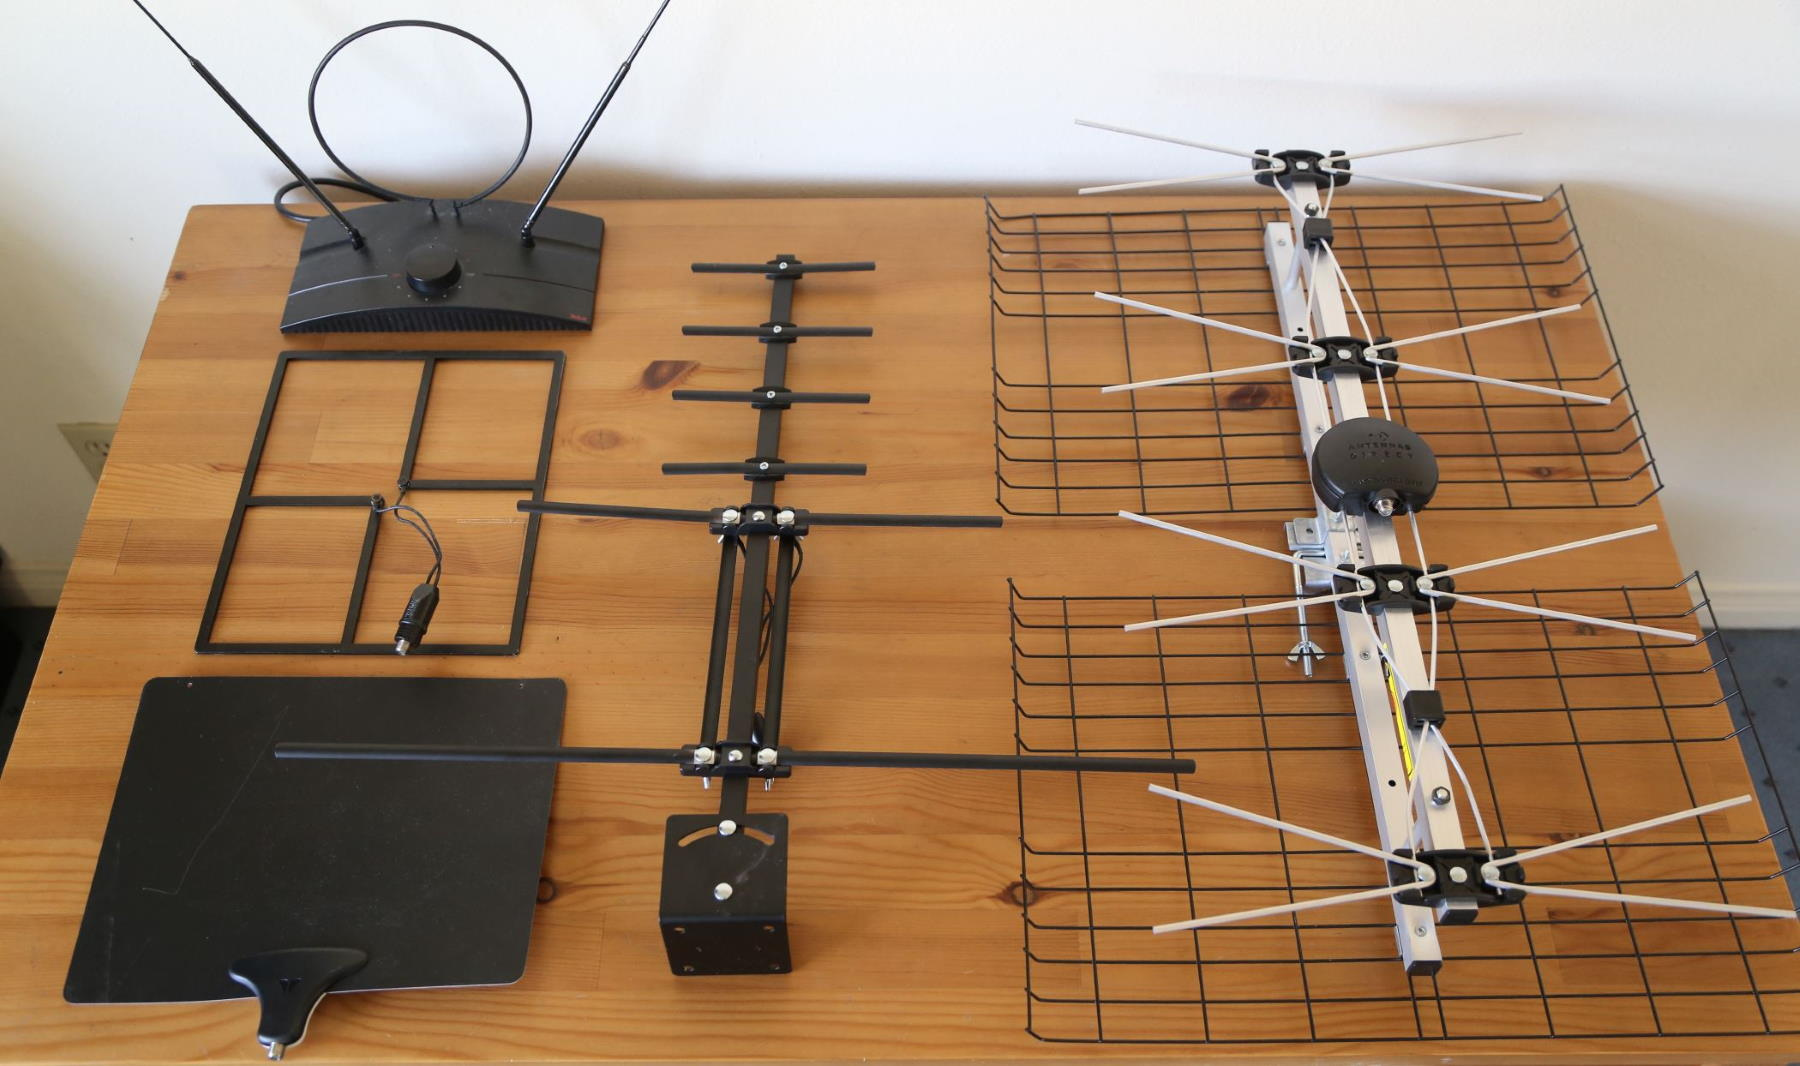 Broadcast TV antennas that I have tested